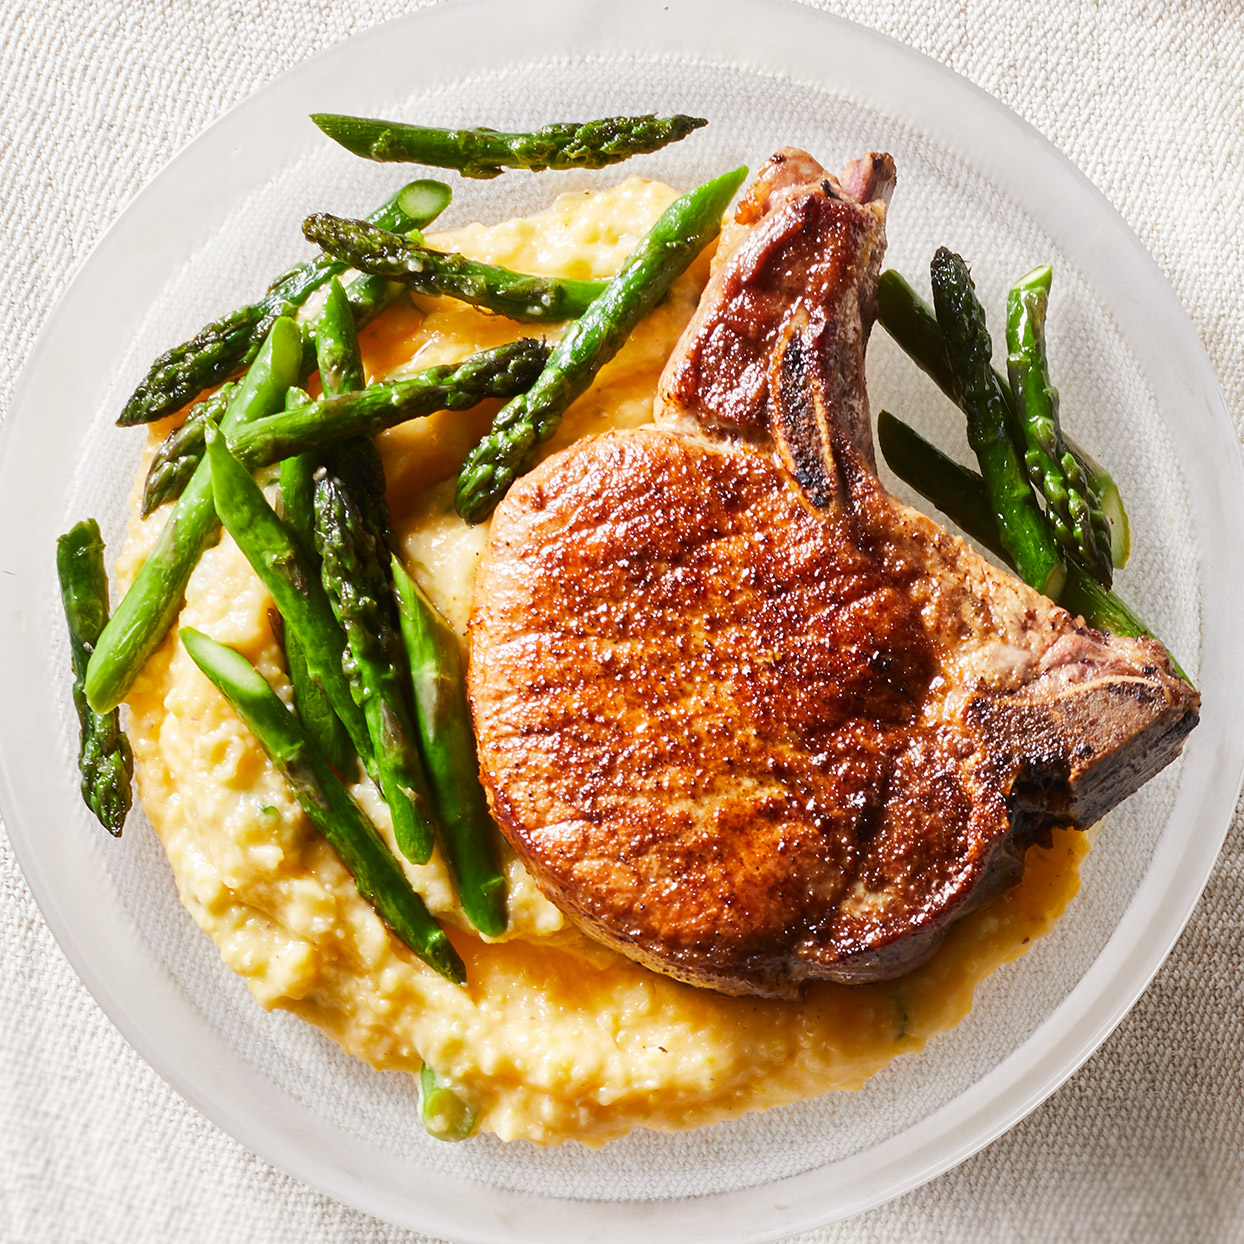 Cajun Skillet Pork Chops with Asparagus & Cheesy Polenta Breana Killeen